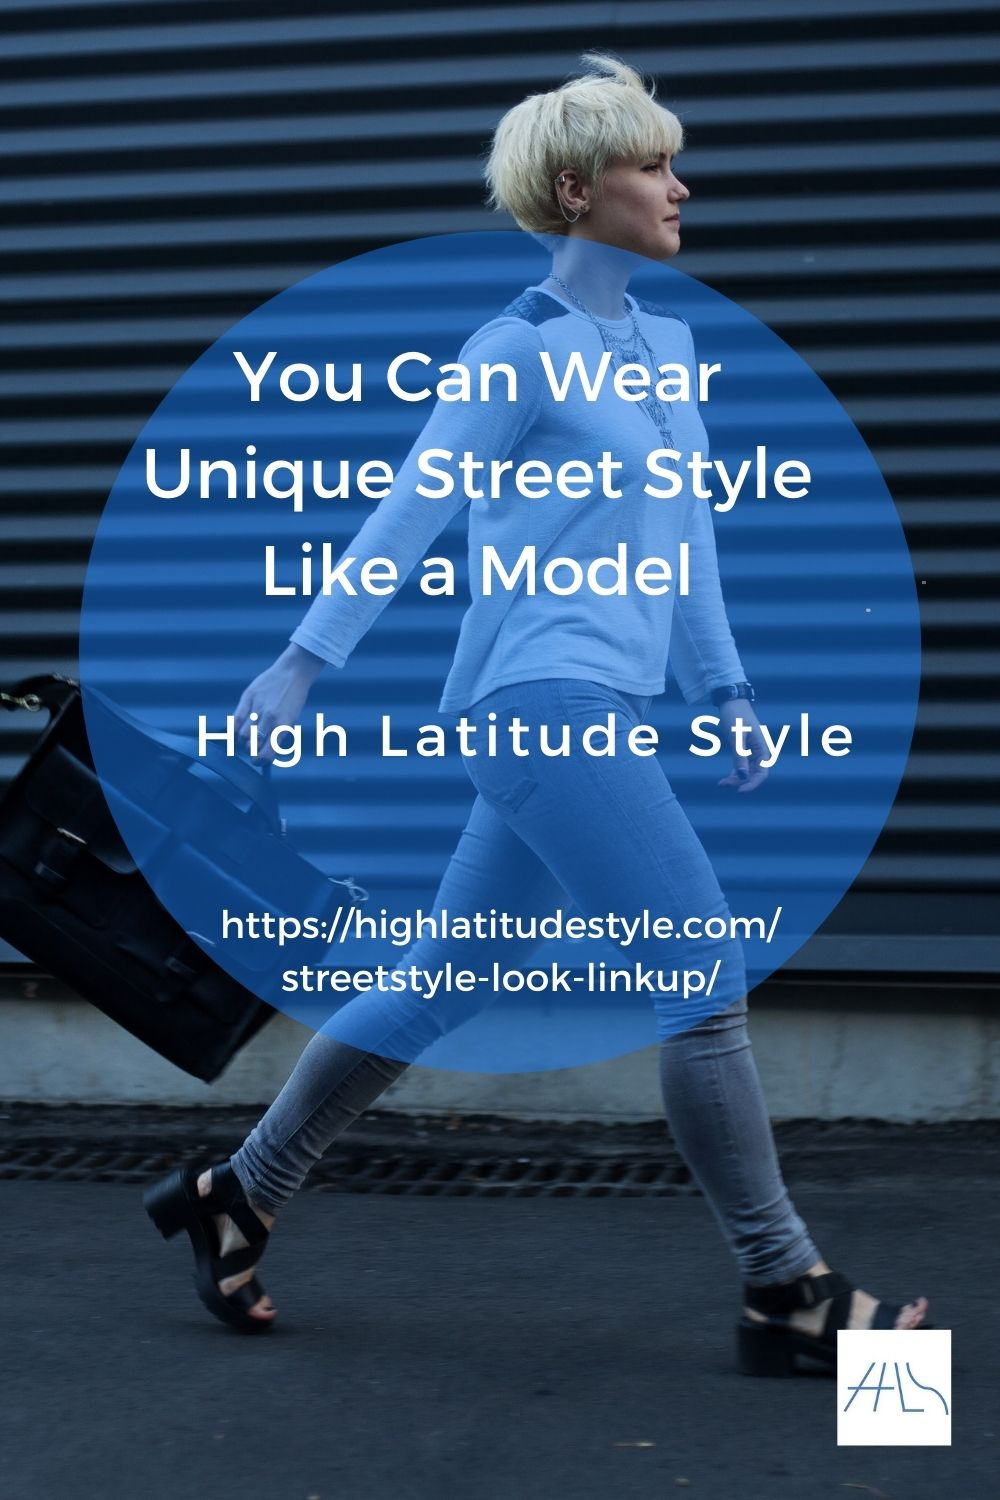 You Can Wear Unique Street Style Like a Model